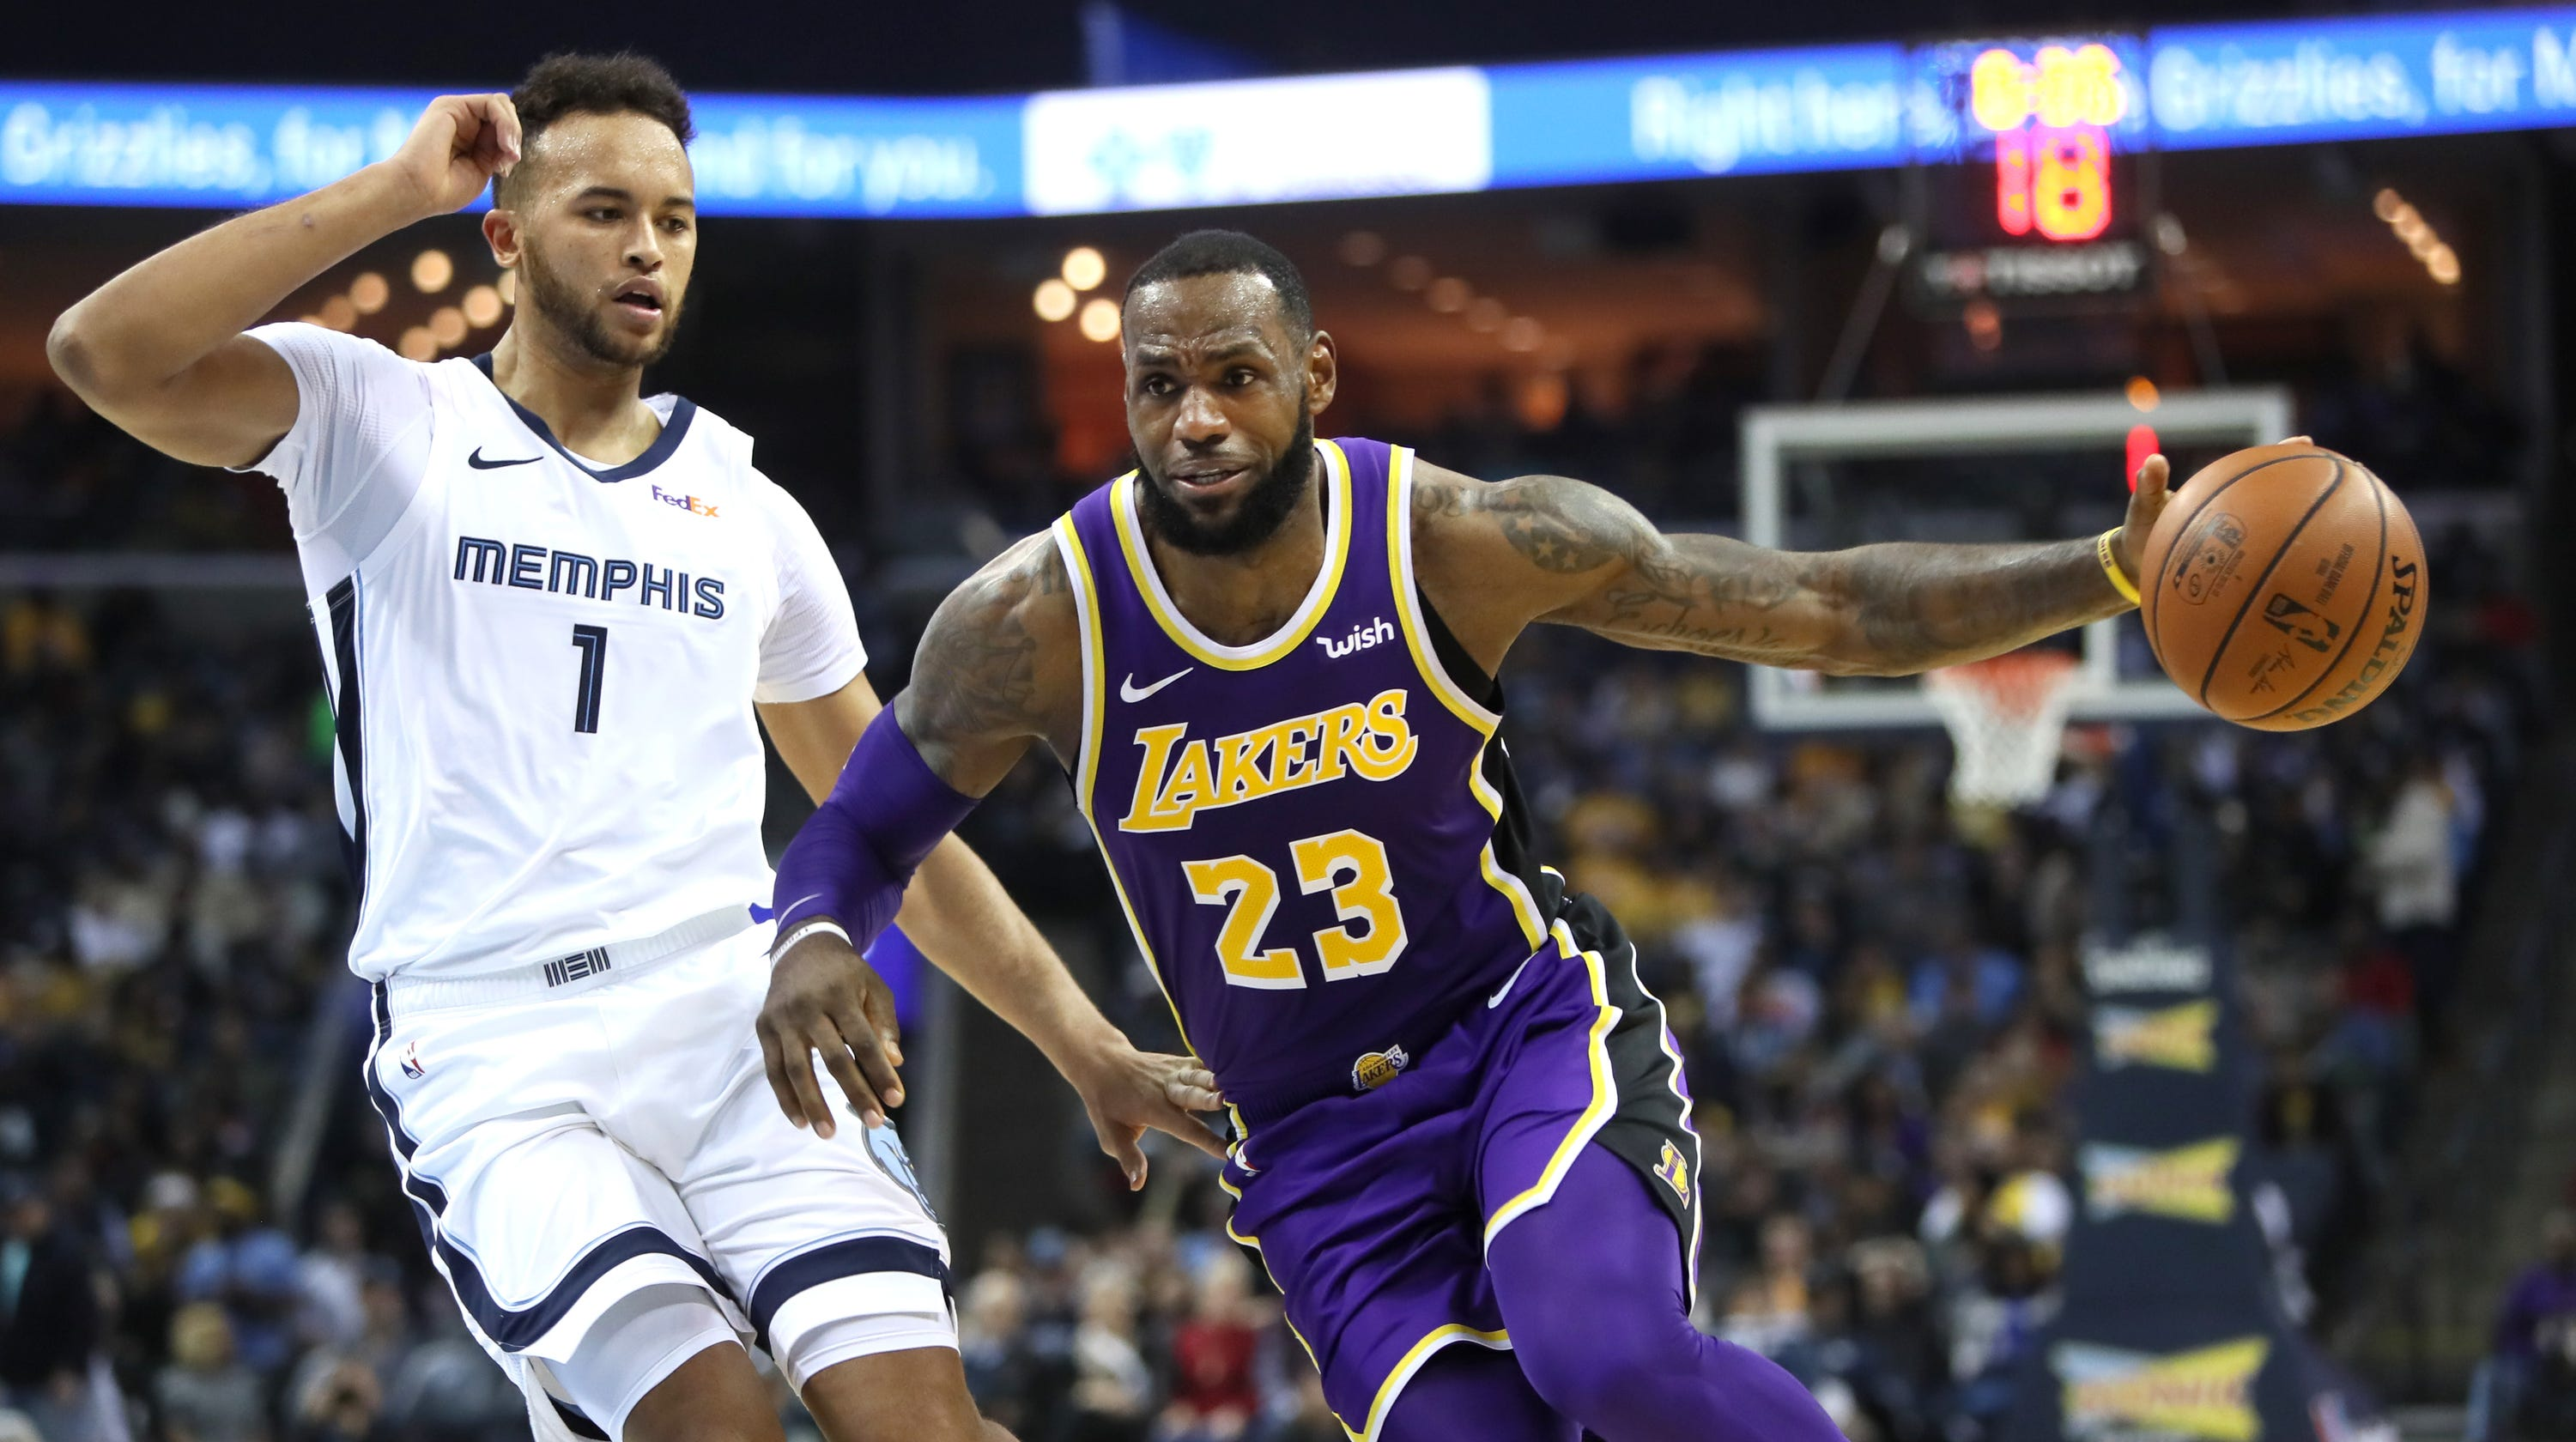 be1cc765438f LeBron James  Ticket prices cheap for Memphis Grizzlies vs. Lakers